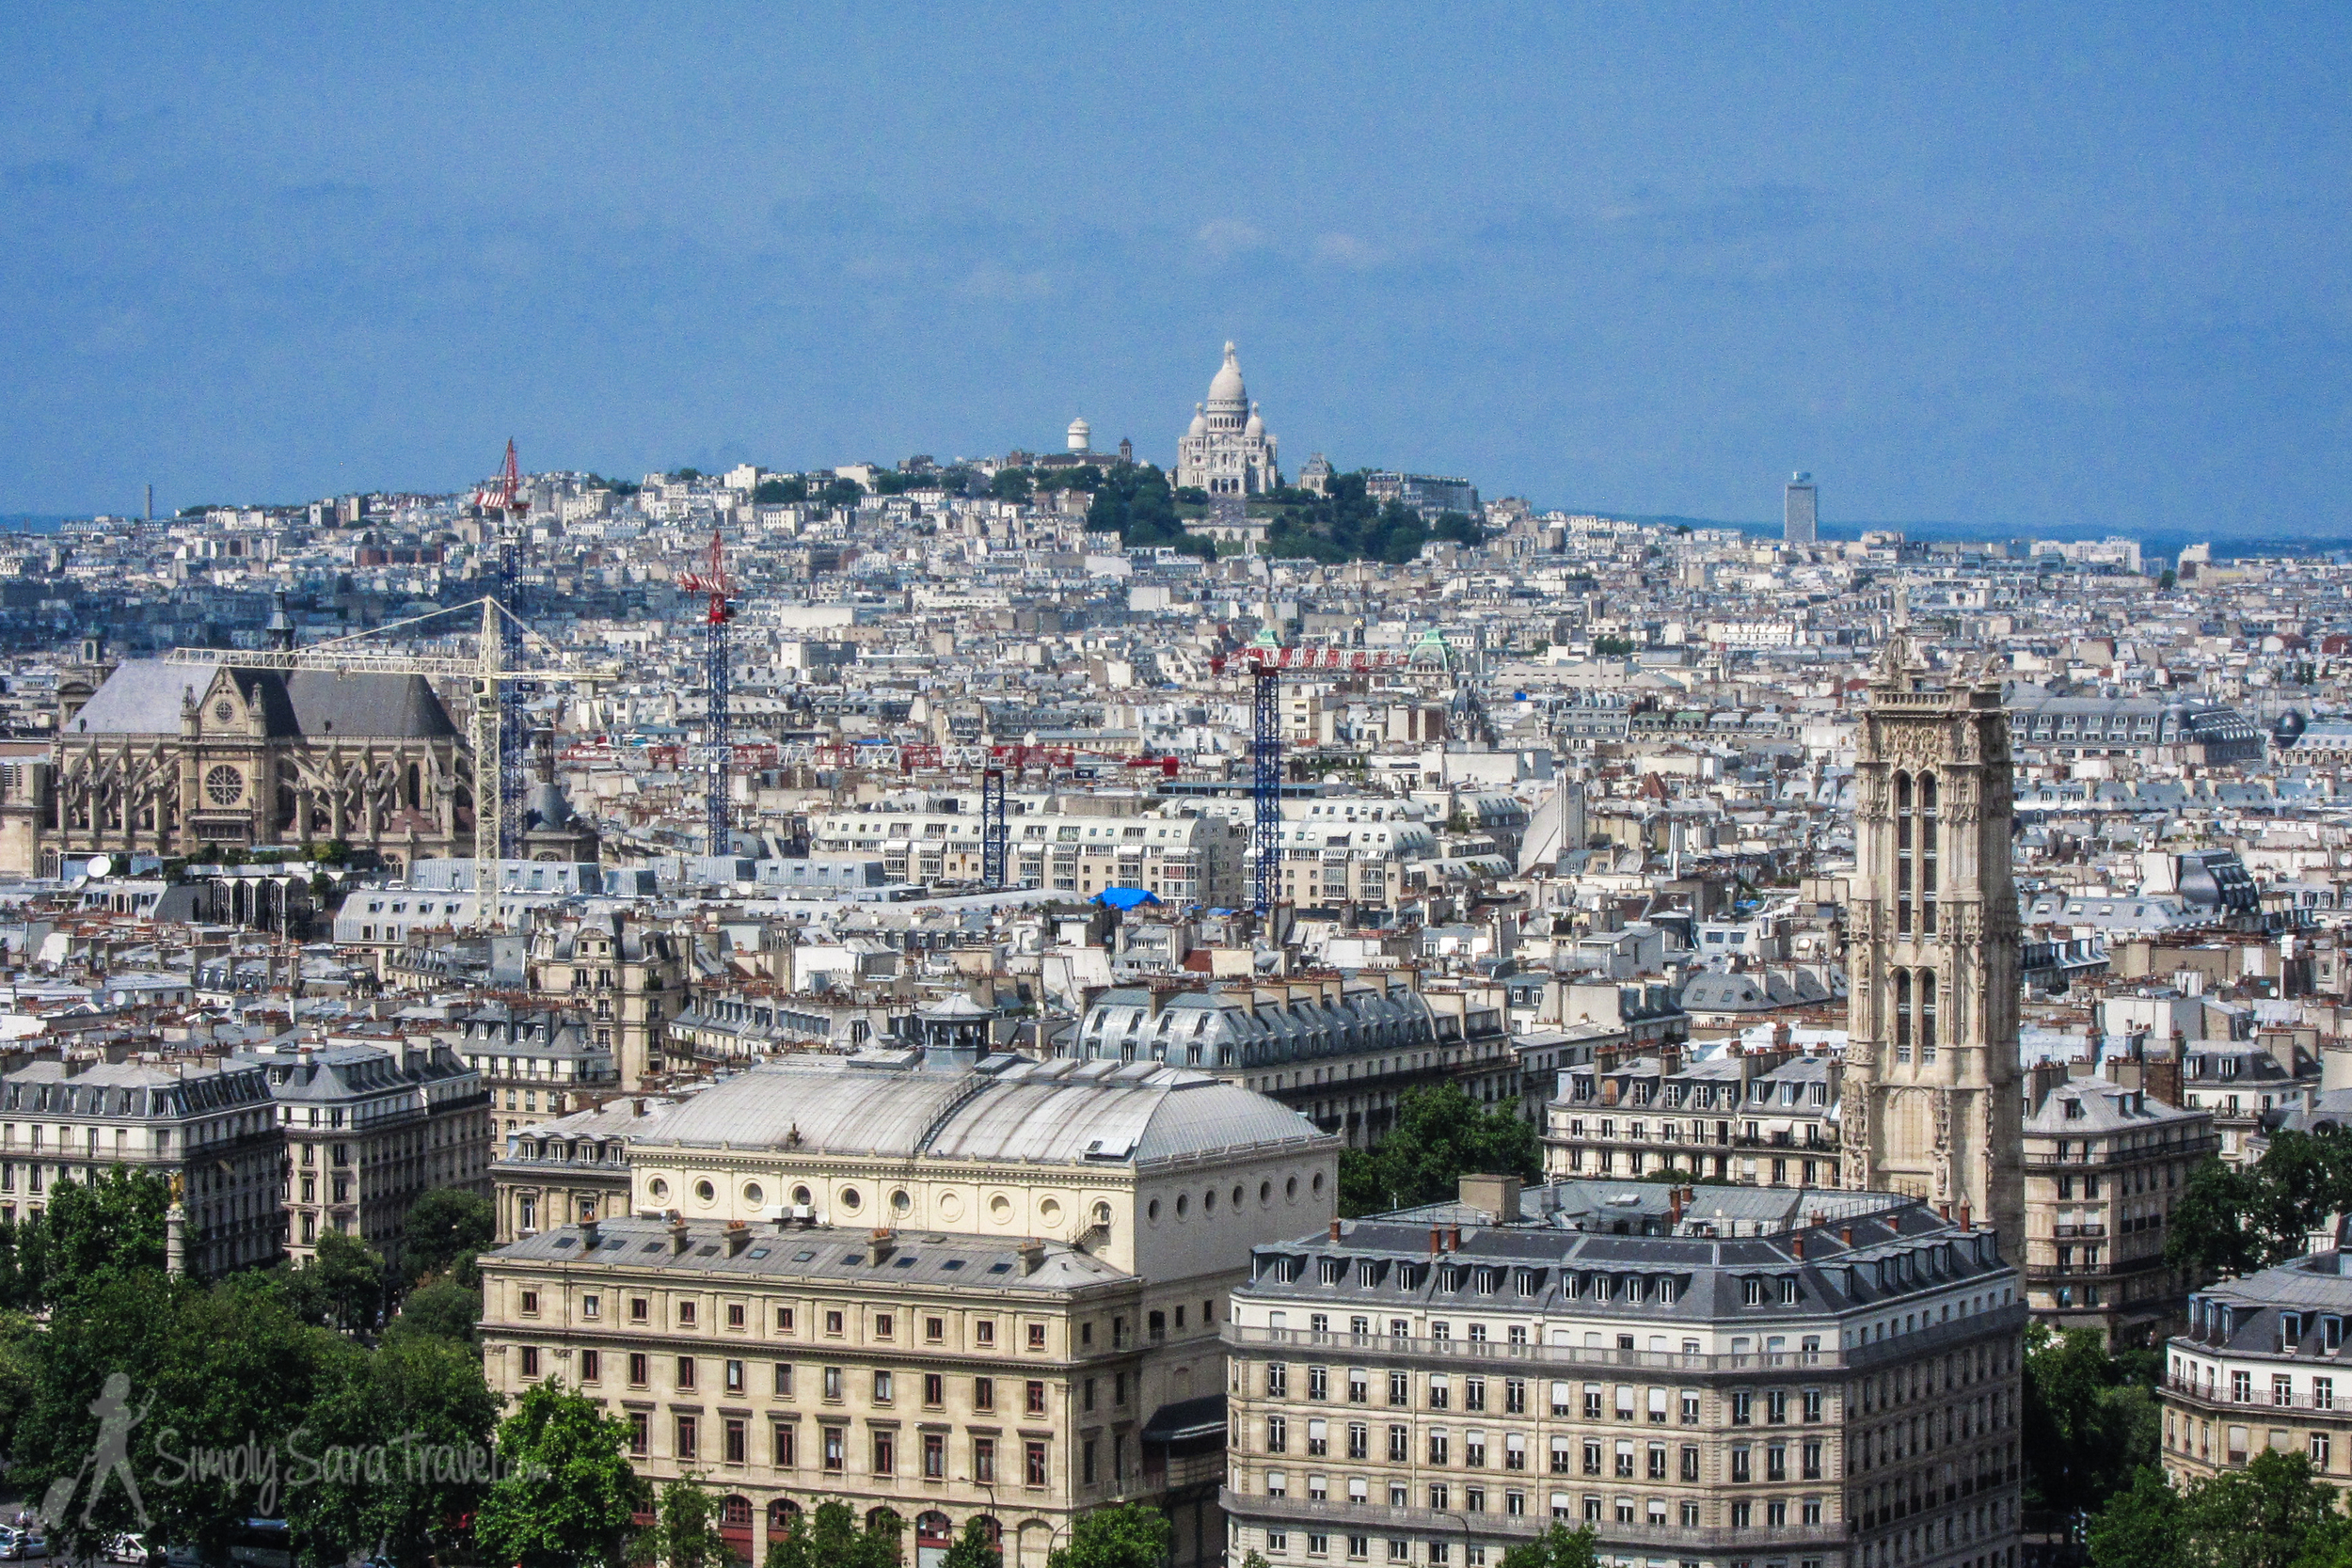 A view of Tour Saint-Jacques from the towers ofNotre-Dame Cathedral (andSacré-Cœur perched up on the hill)